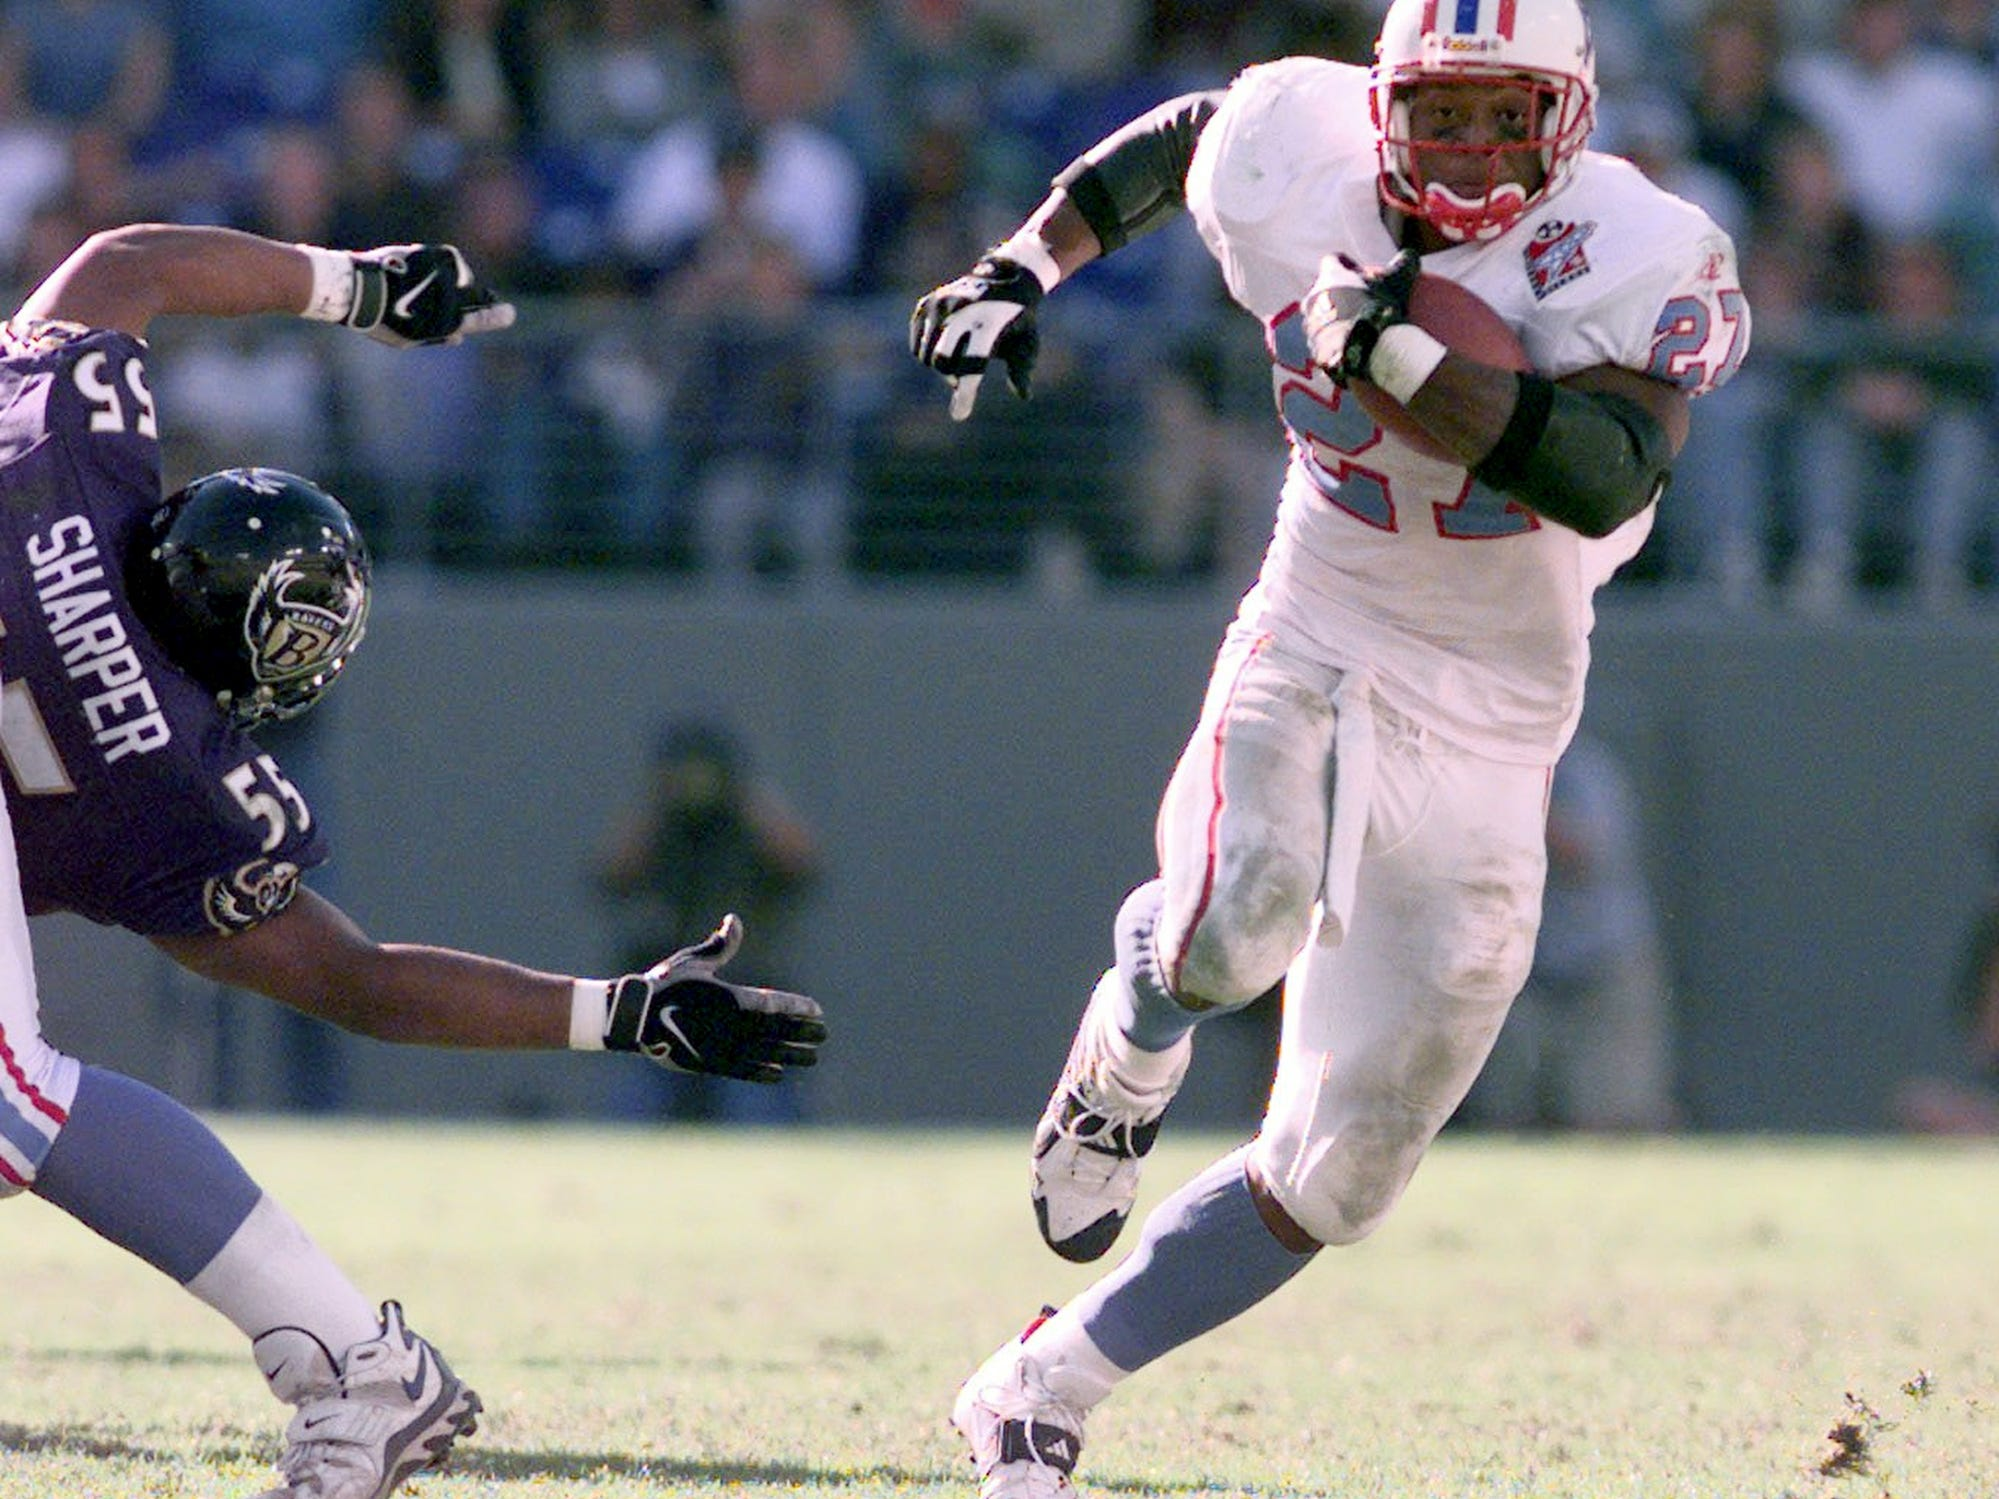 Tennessee Oilers running back Eddie George, right, runs for big yard during the fourth quarter as Jamie Sharper of the Baltimore Ravens reaches for him. The Oilers won the game 12-8 on the road Oct. 11, 1998.